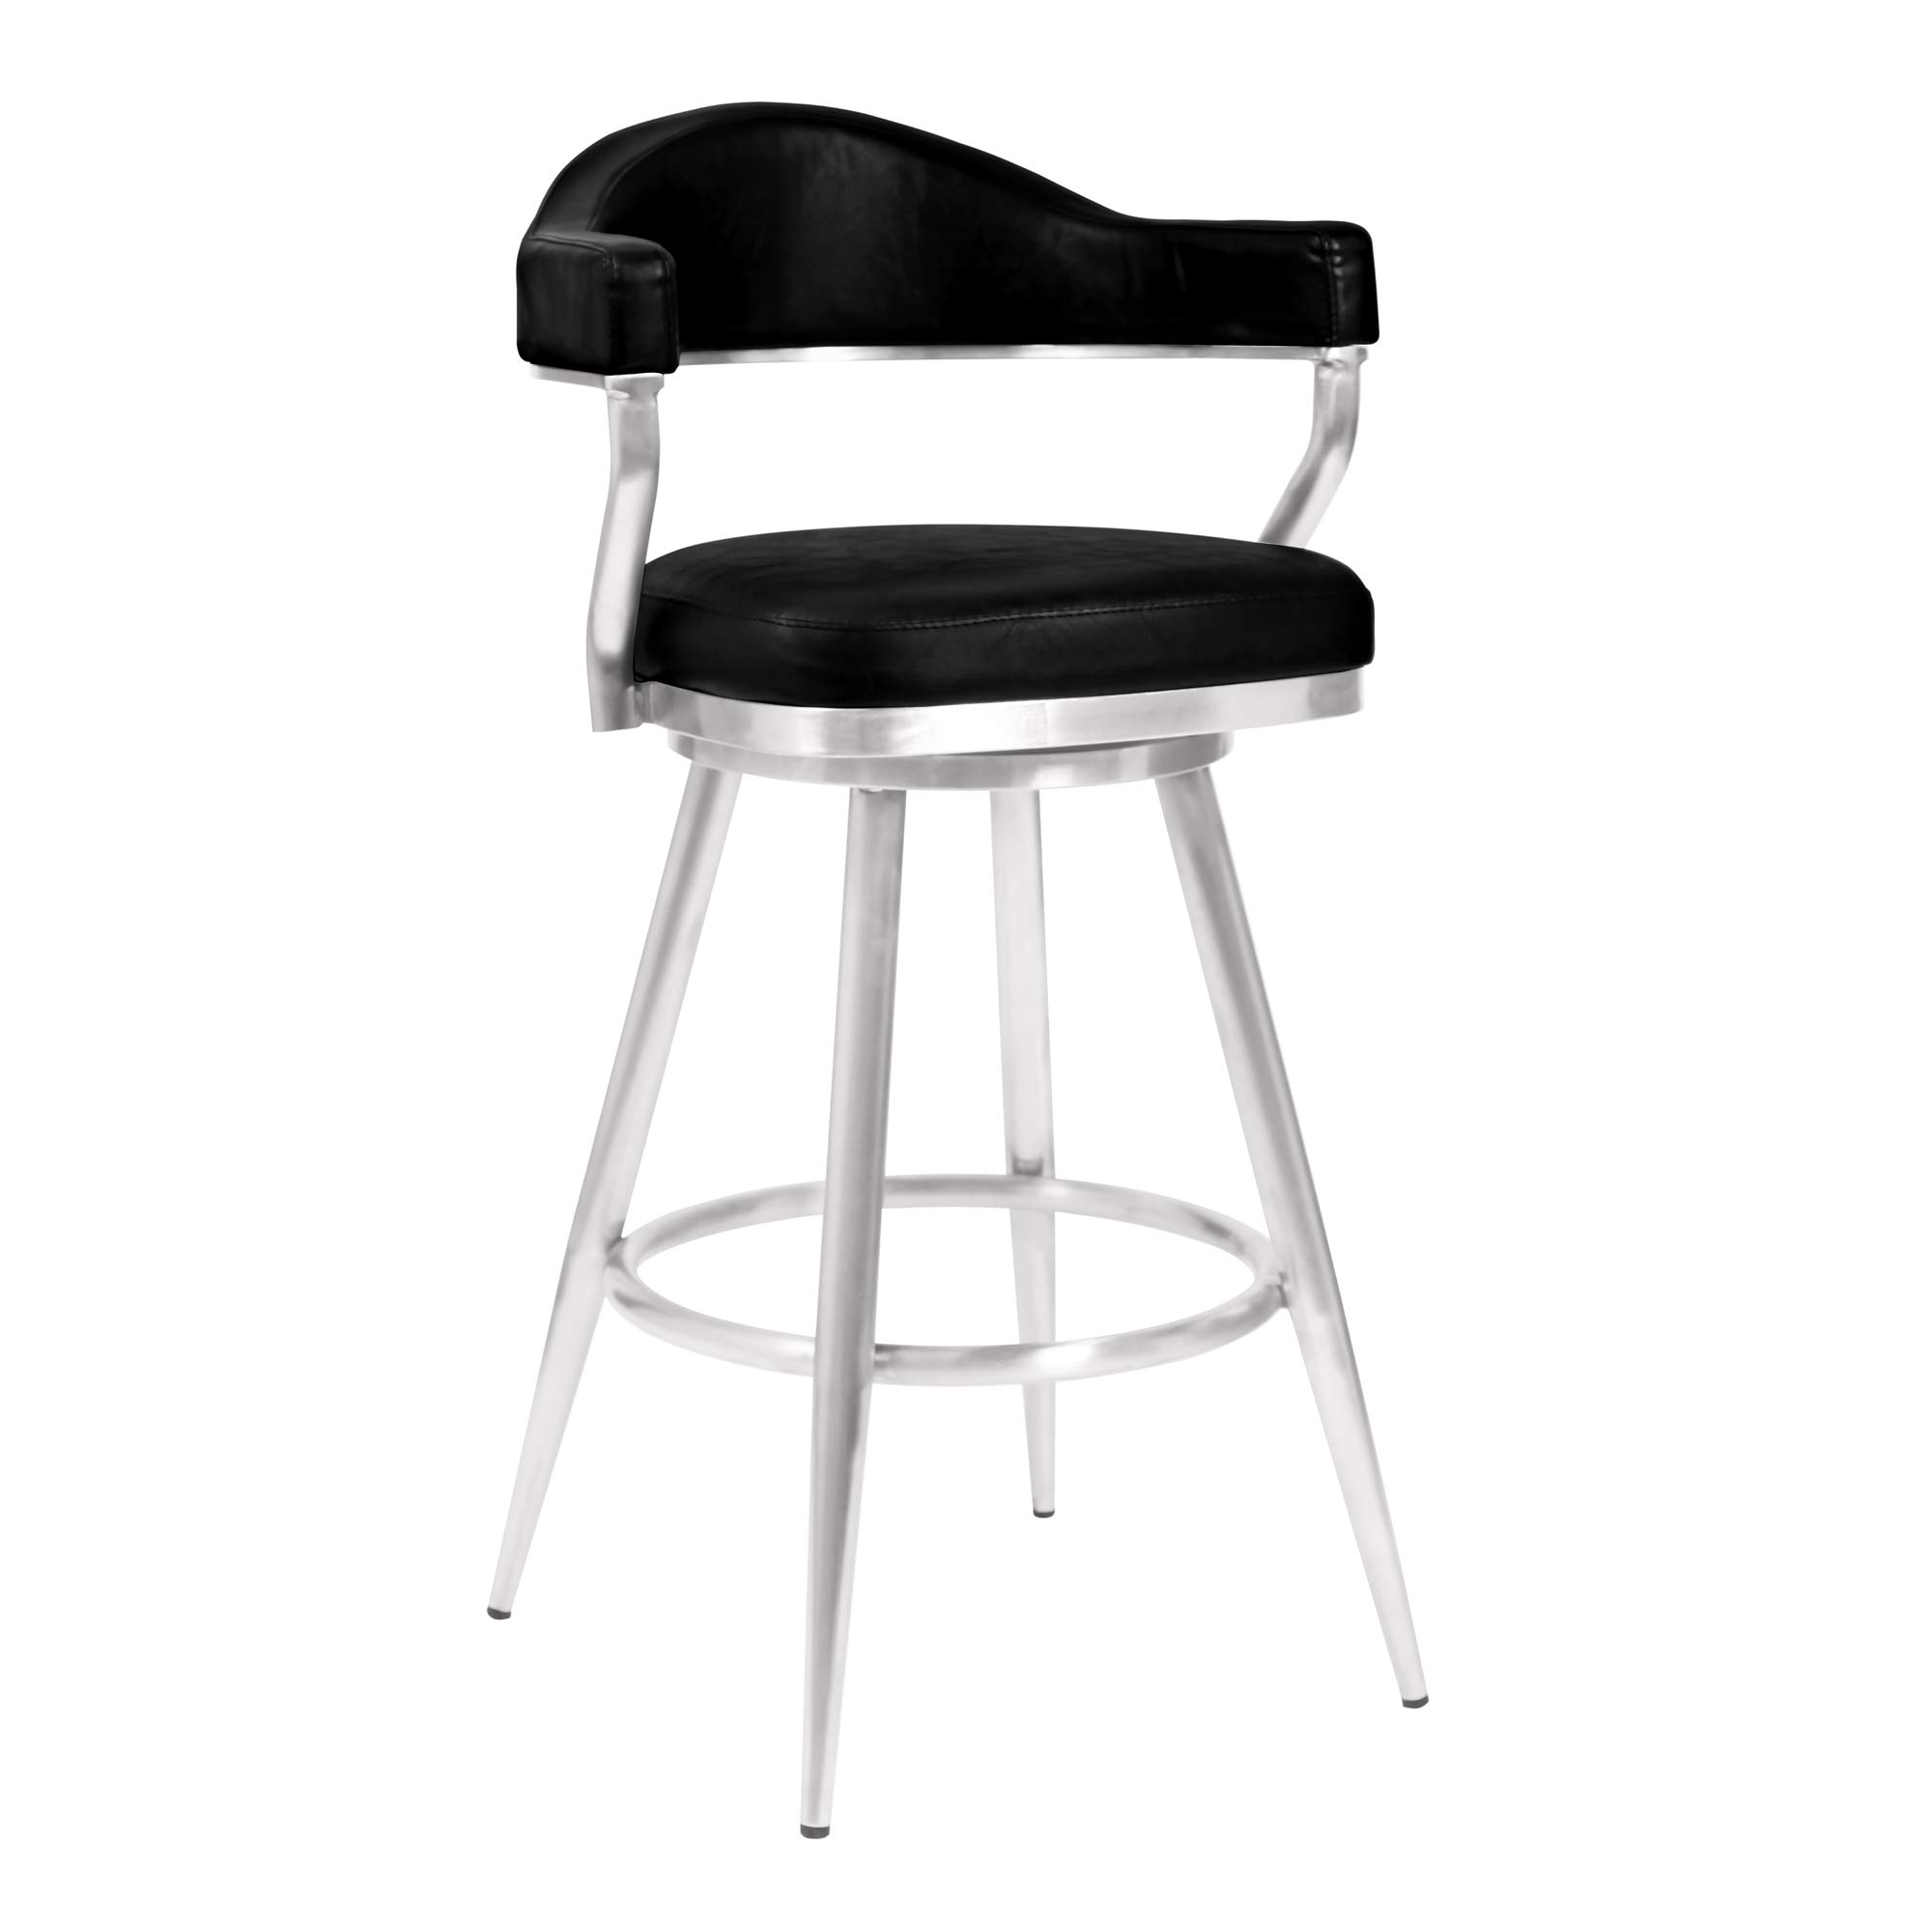 "Armen Living Amador 26"" Counter Height Barstool in Brushed Stainless Steel and Vintage Black Faux Leather"